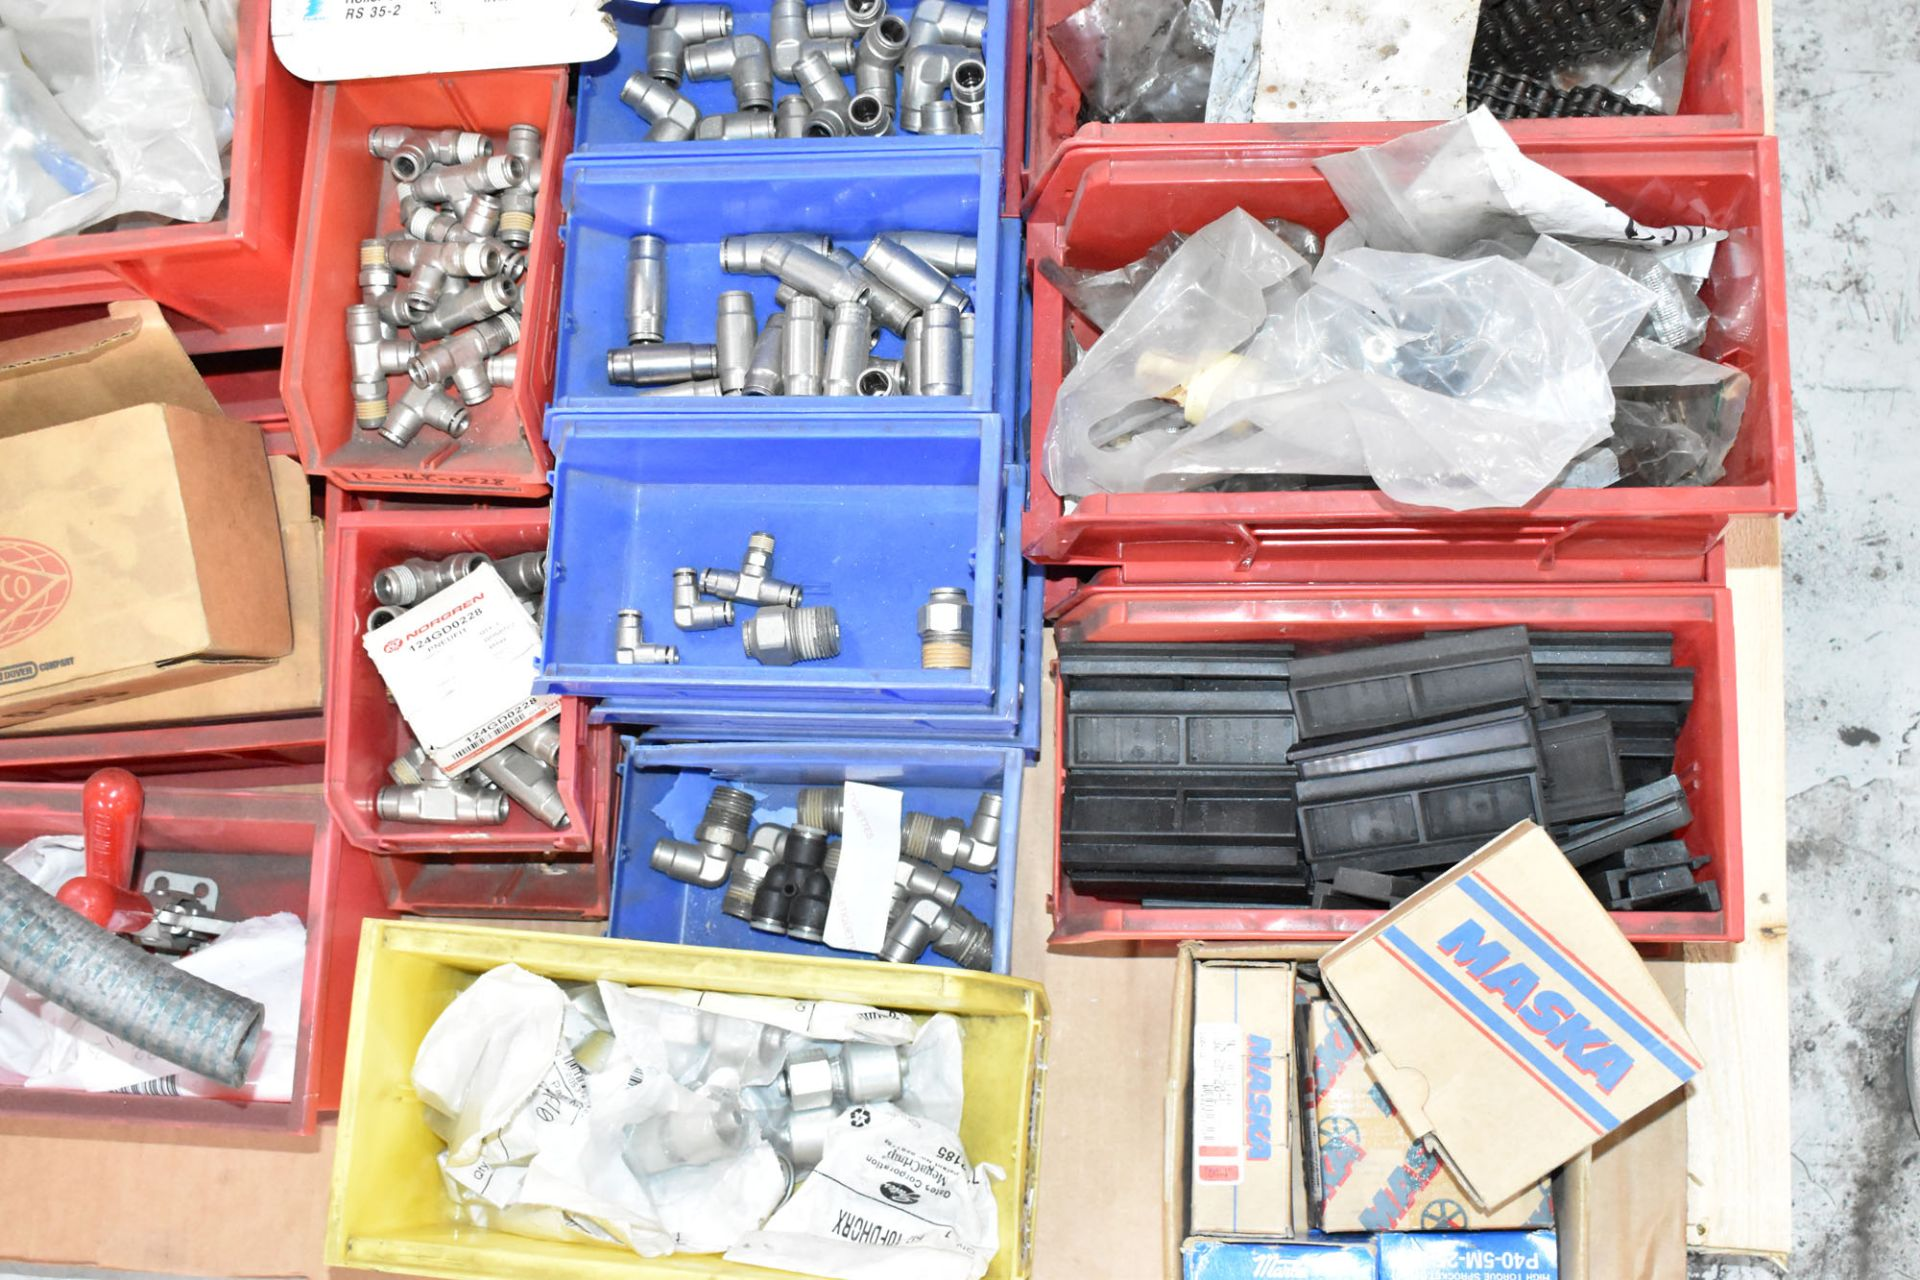 LOT/ PALLET WITH CONTENTS CONSISTING OF HARDWARE, FITTINGS, AND EXTRUDER LINE COMPONENTS [RIGGING - Image 3 of 3